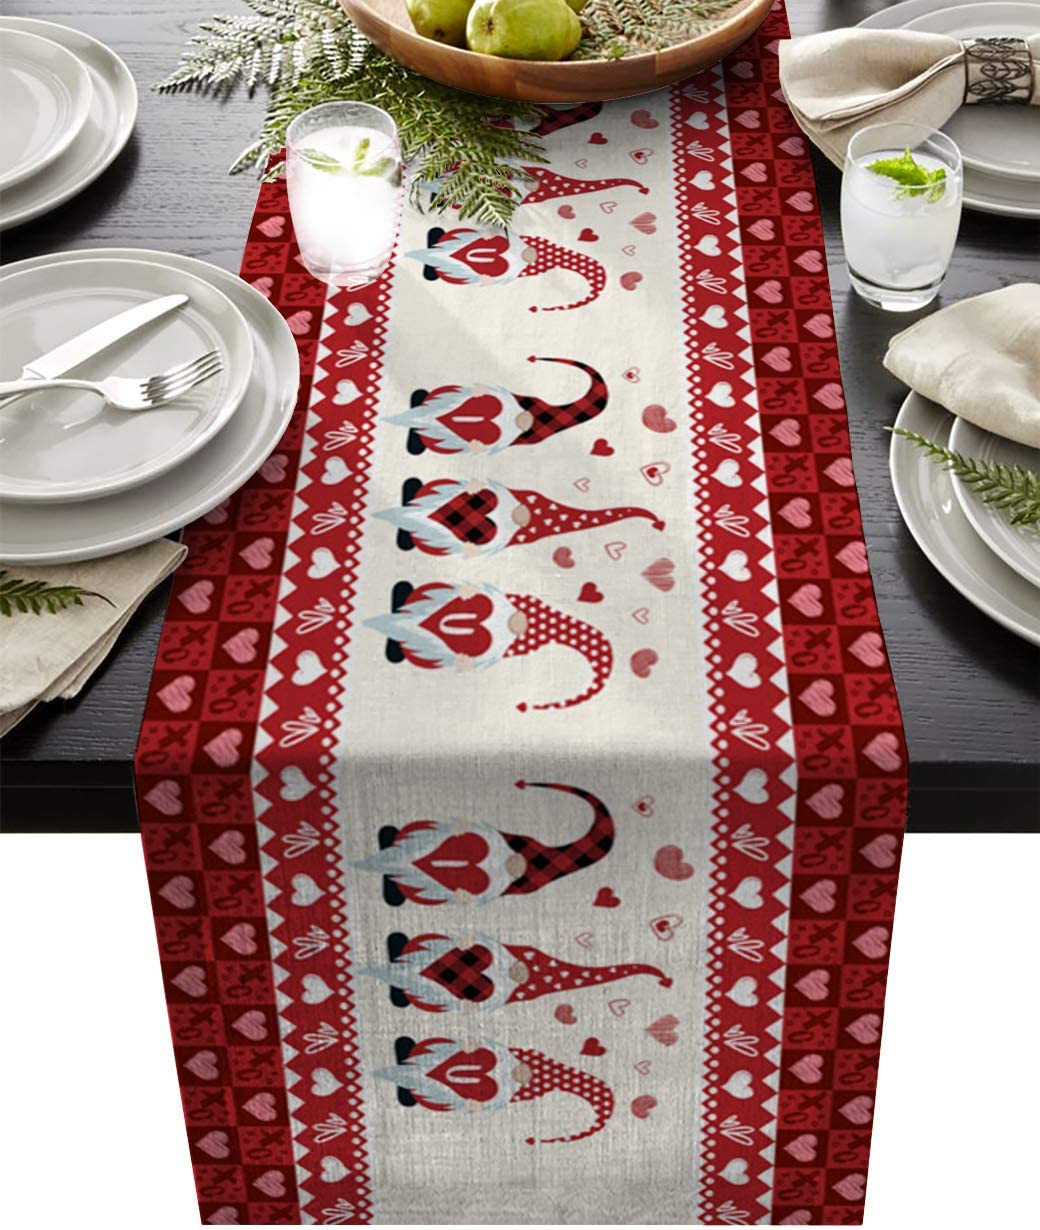 An elegant addition to your dining or decorative experience Reversible for both holiday AND everyday use Table Runner